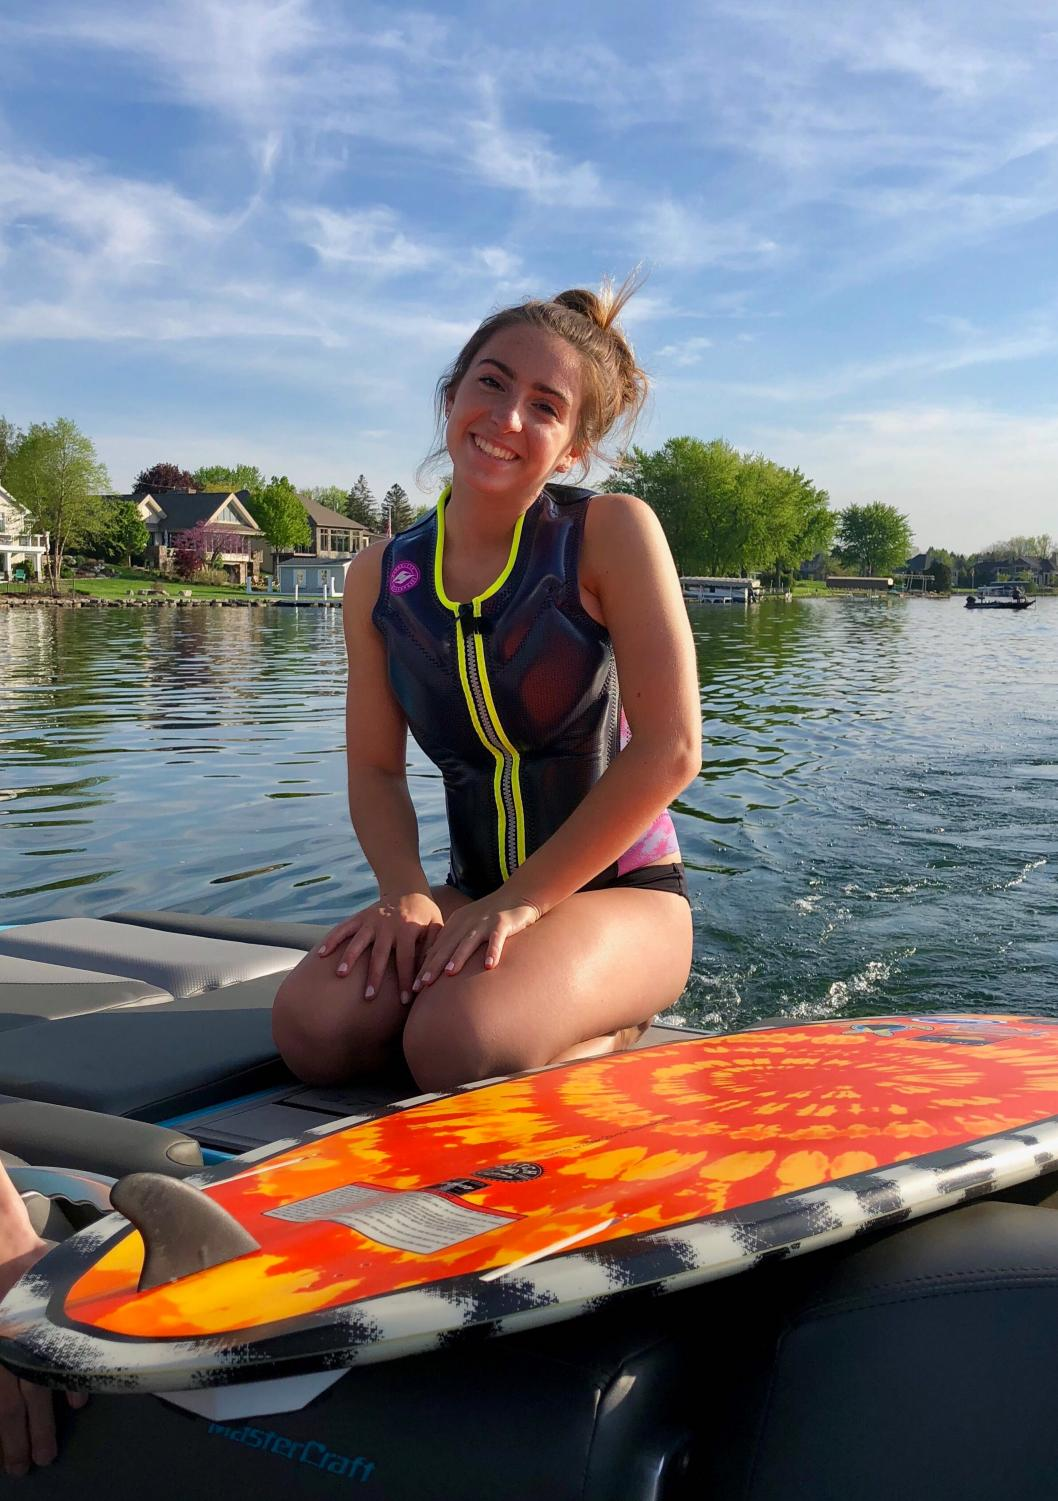 Senior+Julia+Stocker%3A+%E2%80%9CI%E2%80%99ve+been+surfing+for+three+summers.+I+got+into+it+when+we+got+our+boat+that+had+ballast+tanks+for+surfing%2C+and+I+took+one+lesson+and+immediately+fell+in+love+with+it.+It%E2%80%99s+so+fun+to+be+behind+the+boat+doing+tricks+and+listening+to+music.+There%E2%80%99s+nothing+to+dislike+about+it%3B+I+just+love+everything+about+it.%E2%80%9D